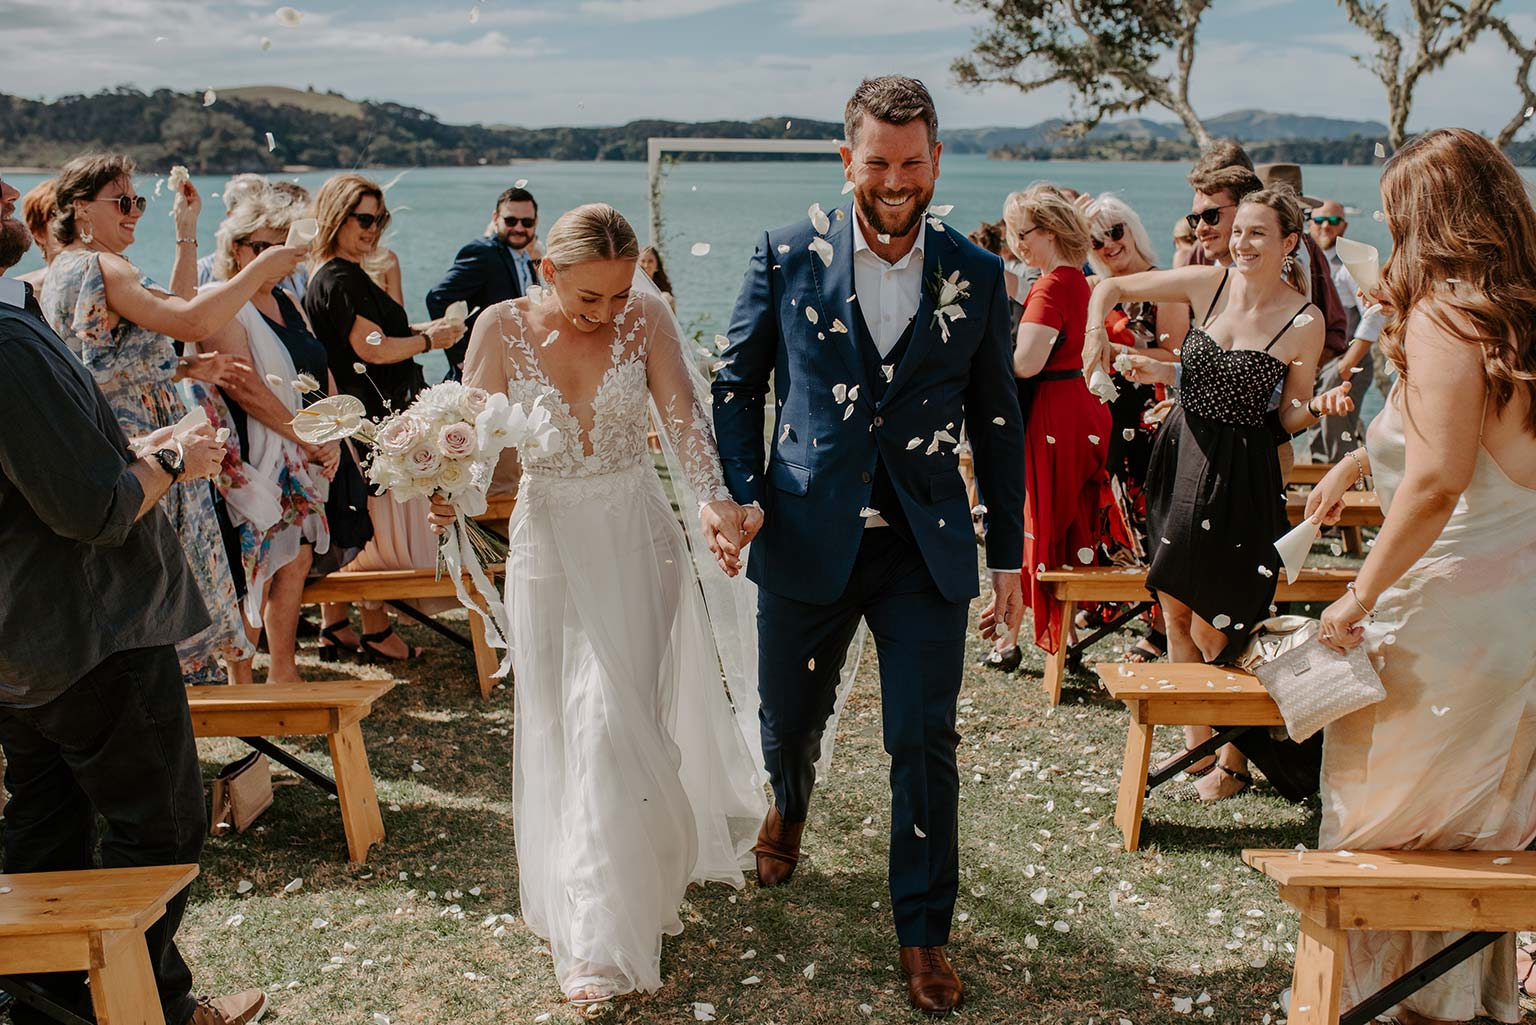 Vinka Design Features Real Weddings - bride and groom walk down the aisle - bride wearing a bespoke Makaira gown with silk-chiffon and tulle overskirt giving her a beautiful train which could be removed later on to reveal a floor length party dress